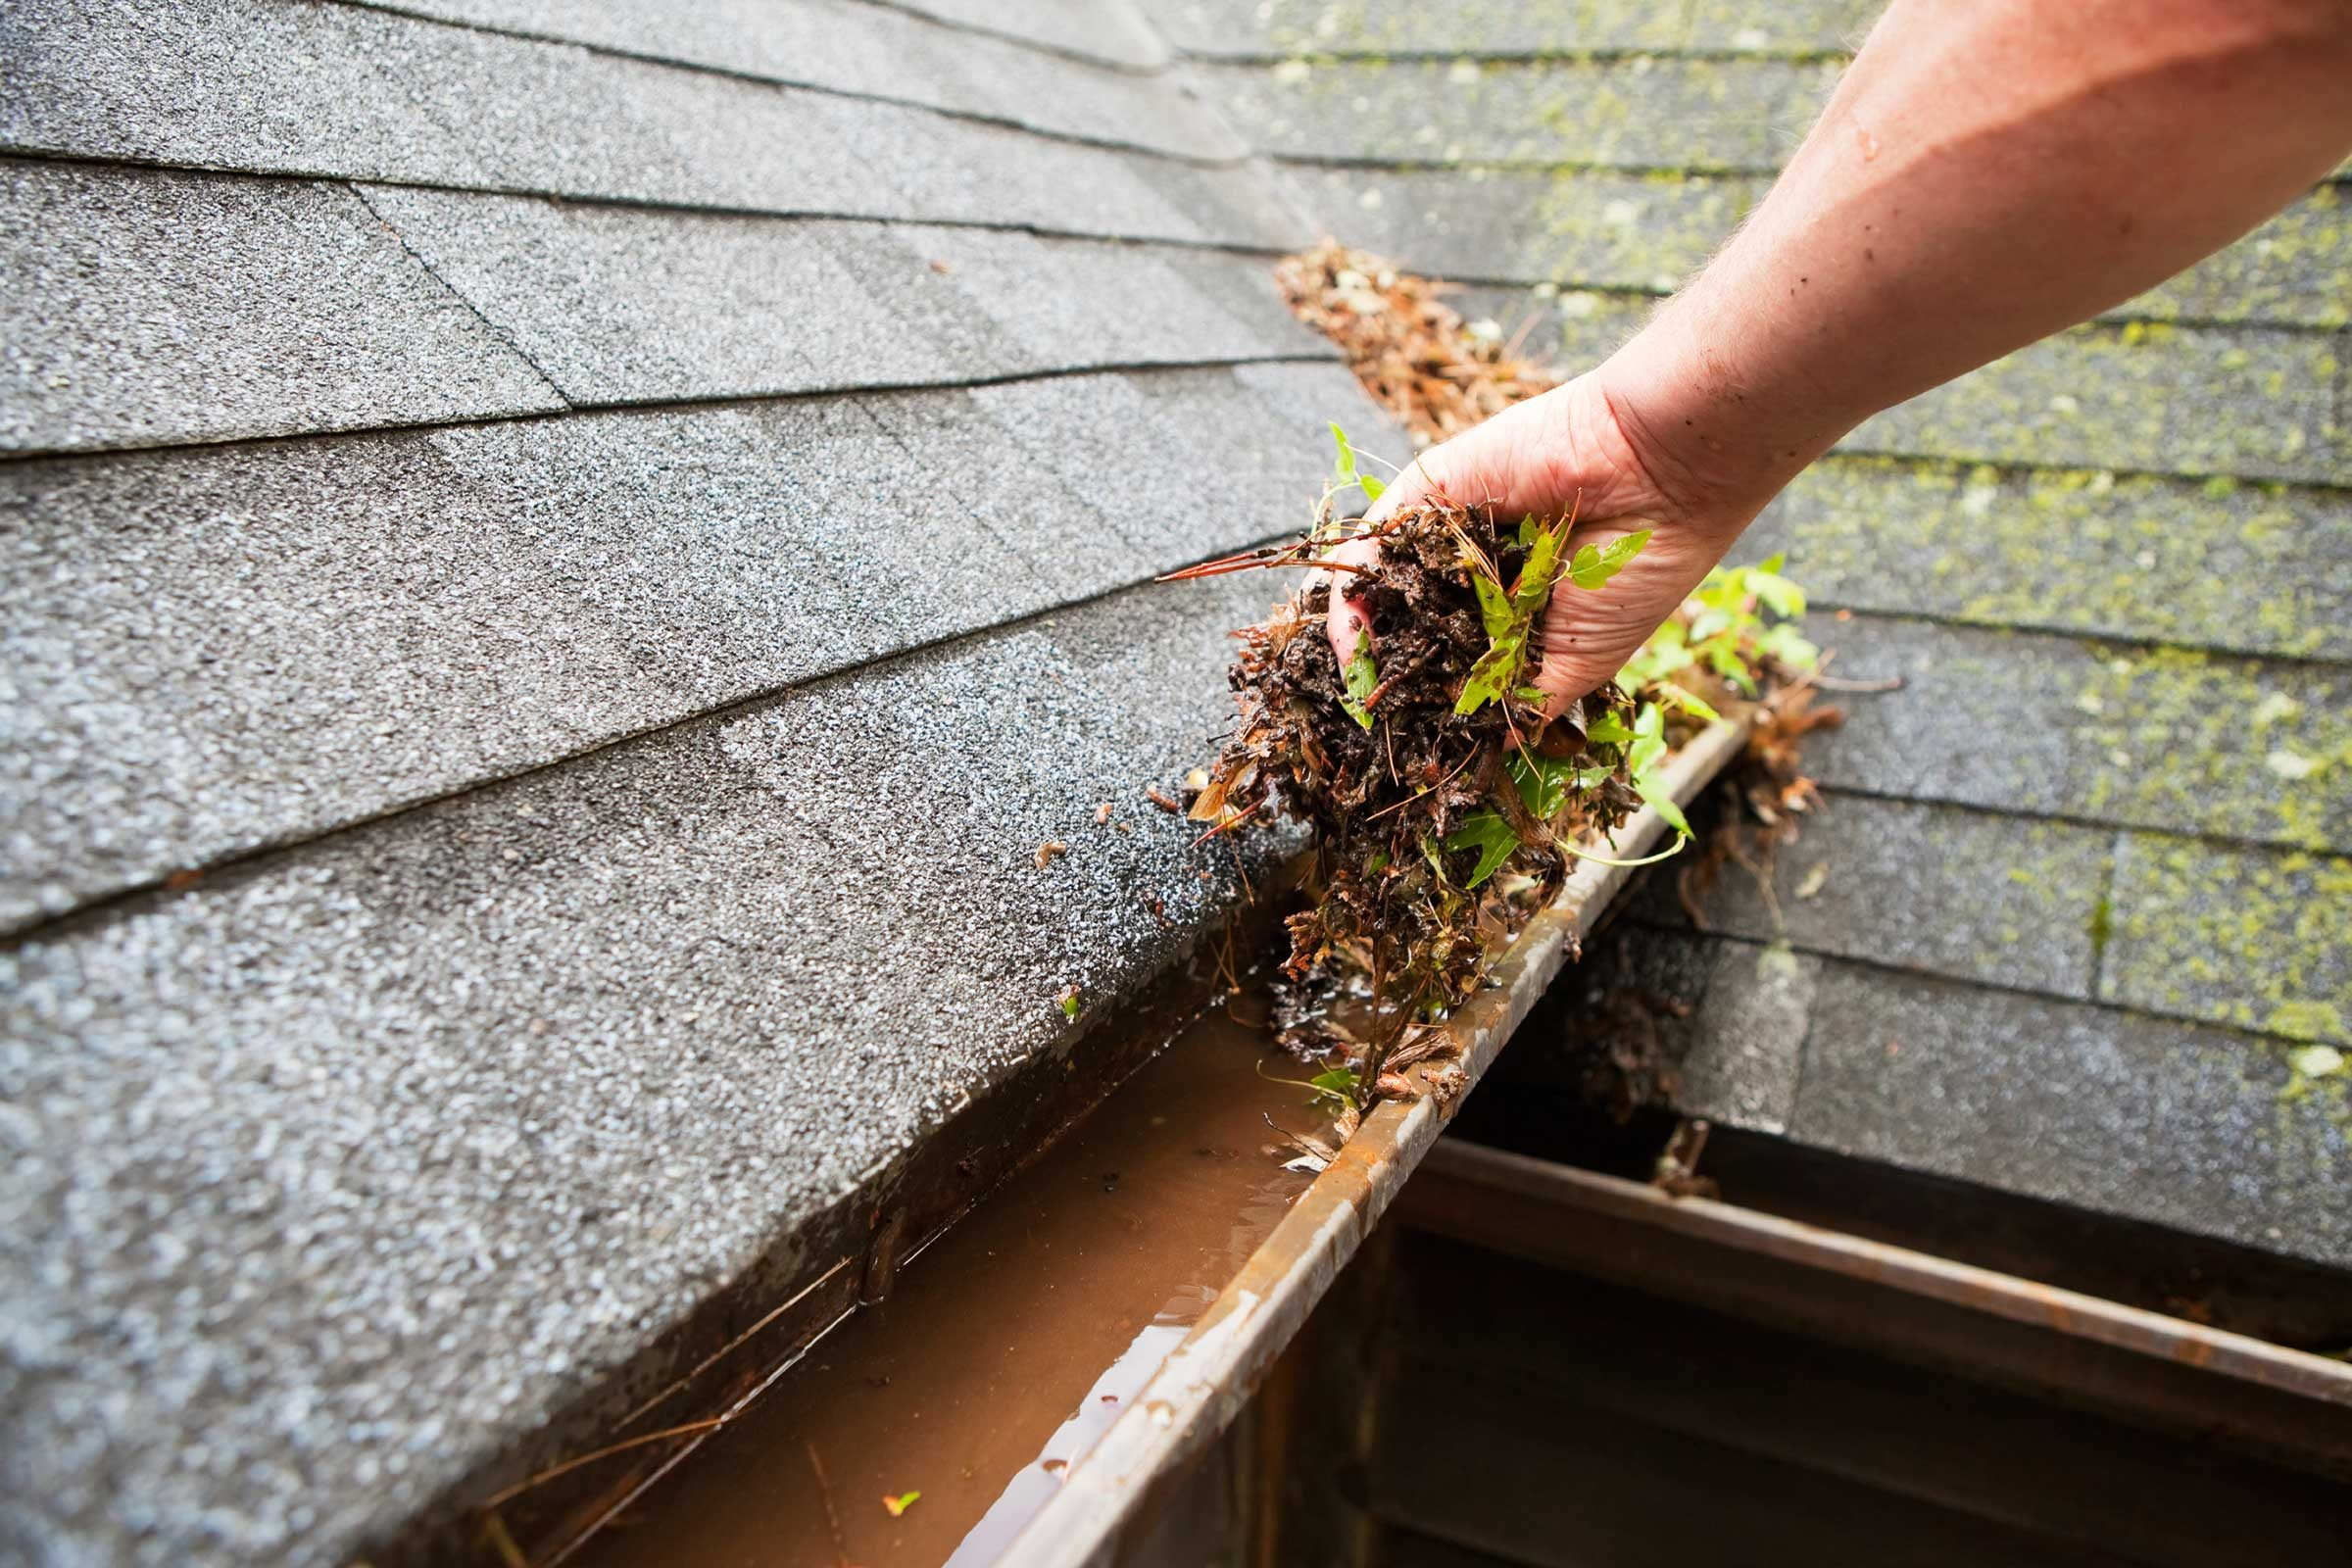 Clean out your gutters and make sure they're not clogged